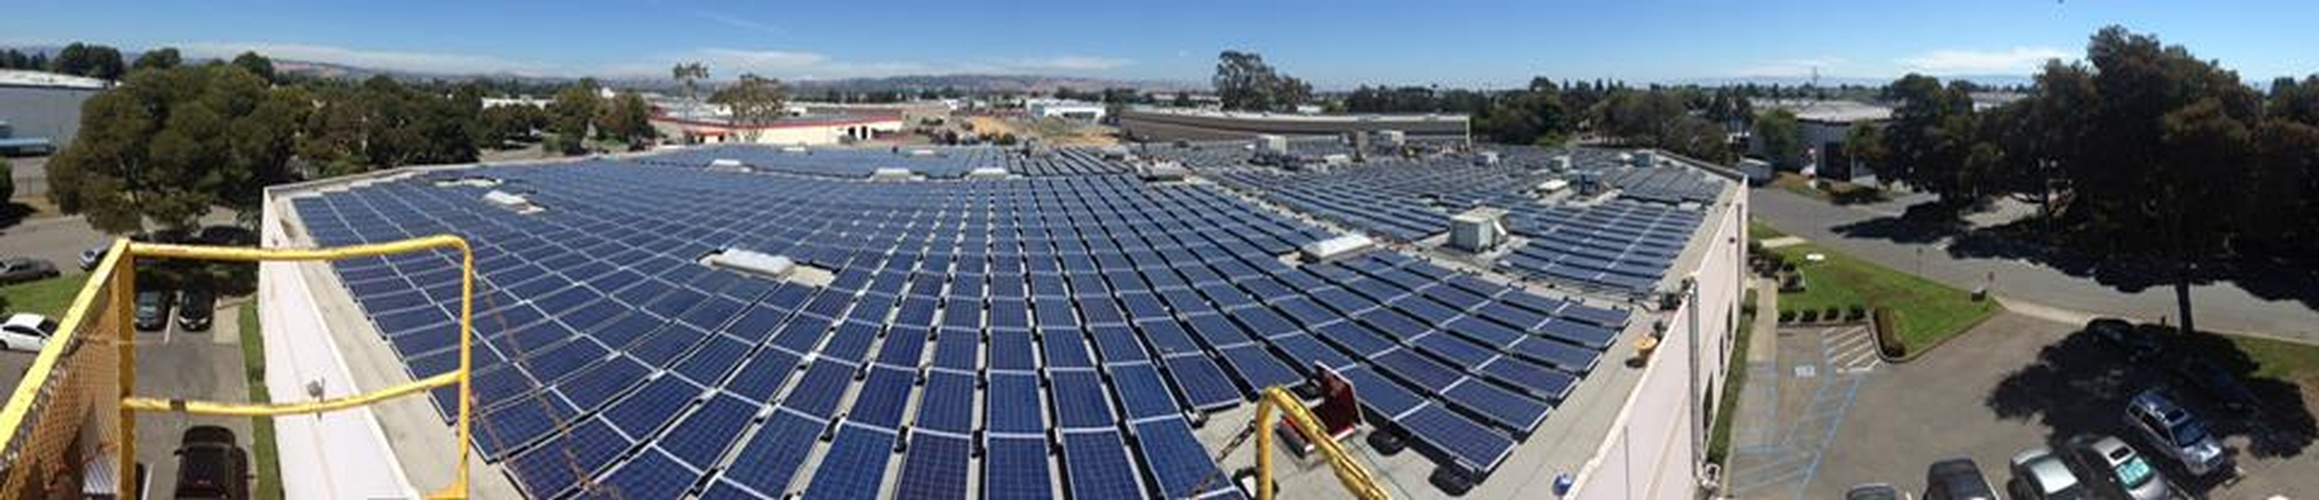 Commercial Rooftop solar panel Array Installation Hayward, CA by FRESCO SOLAR